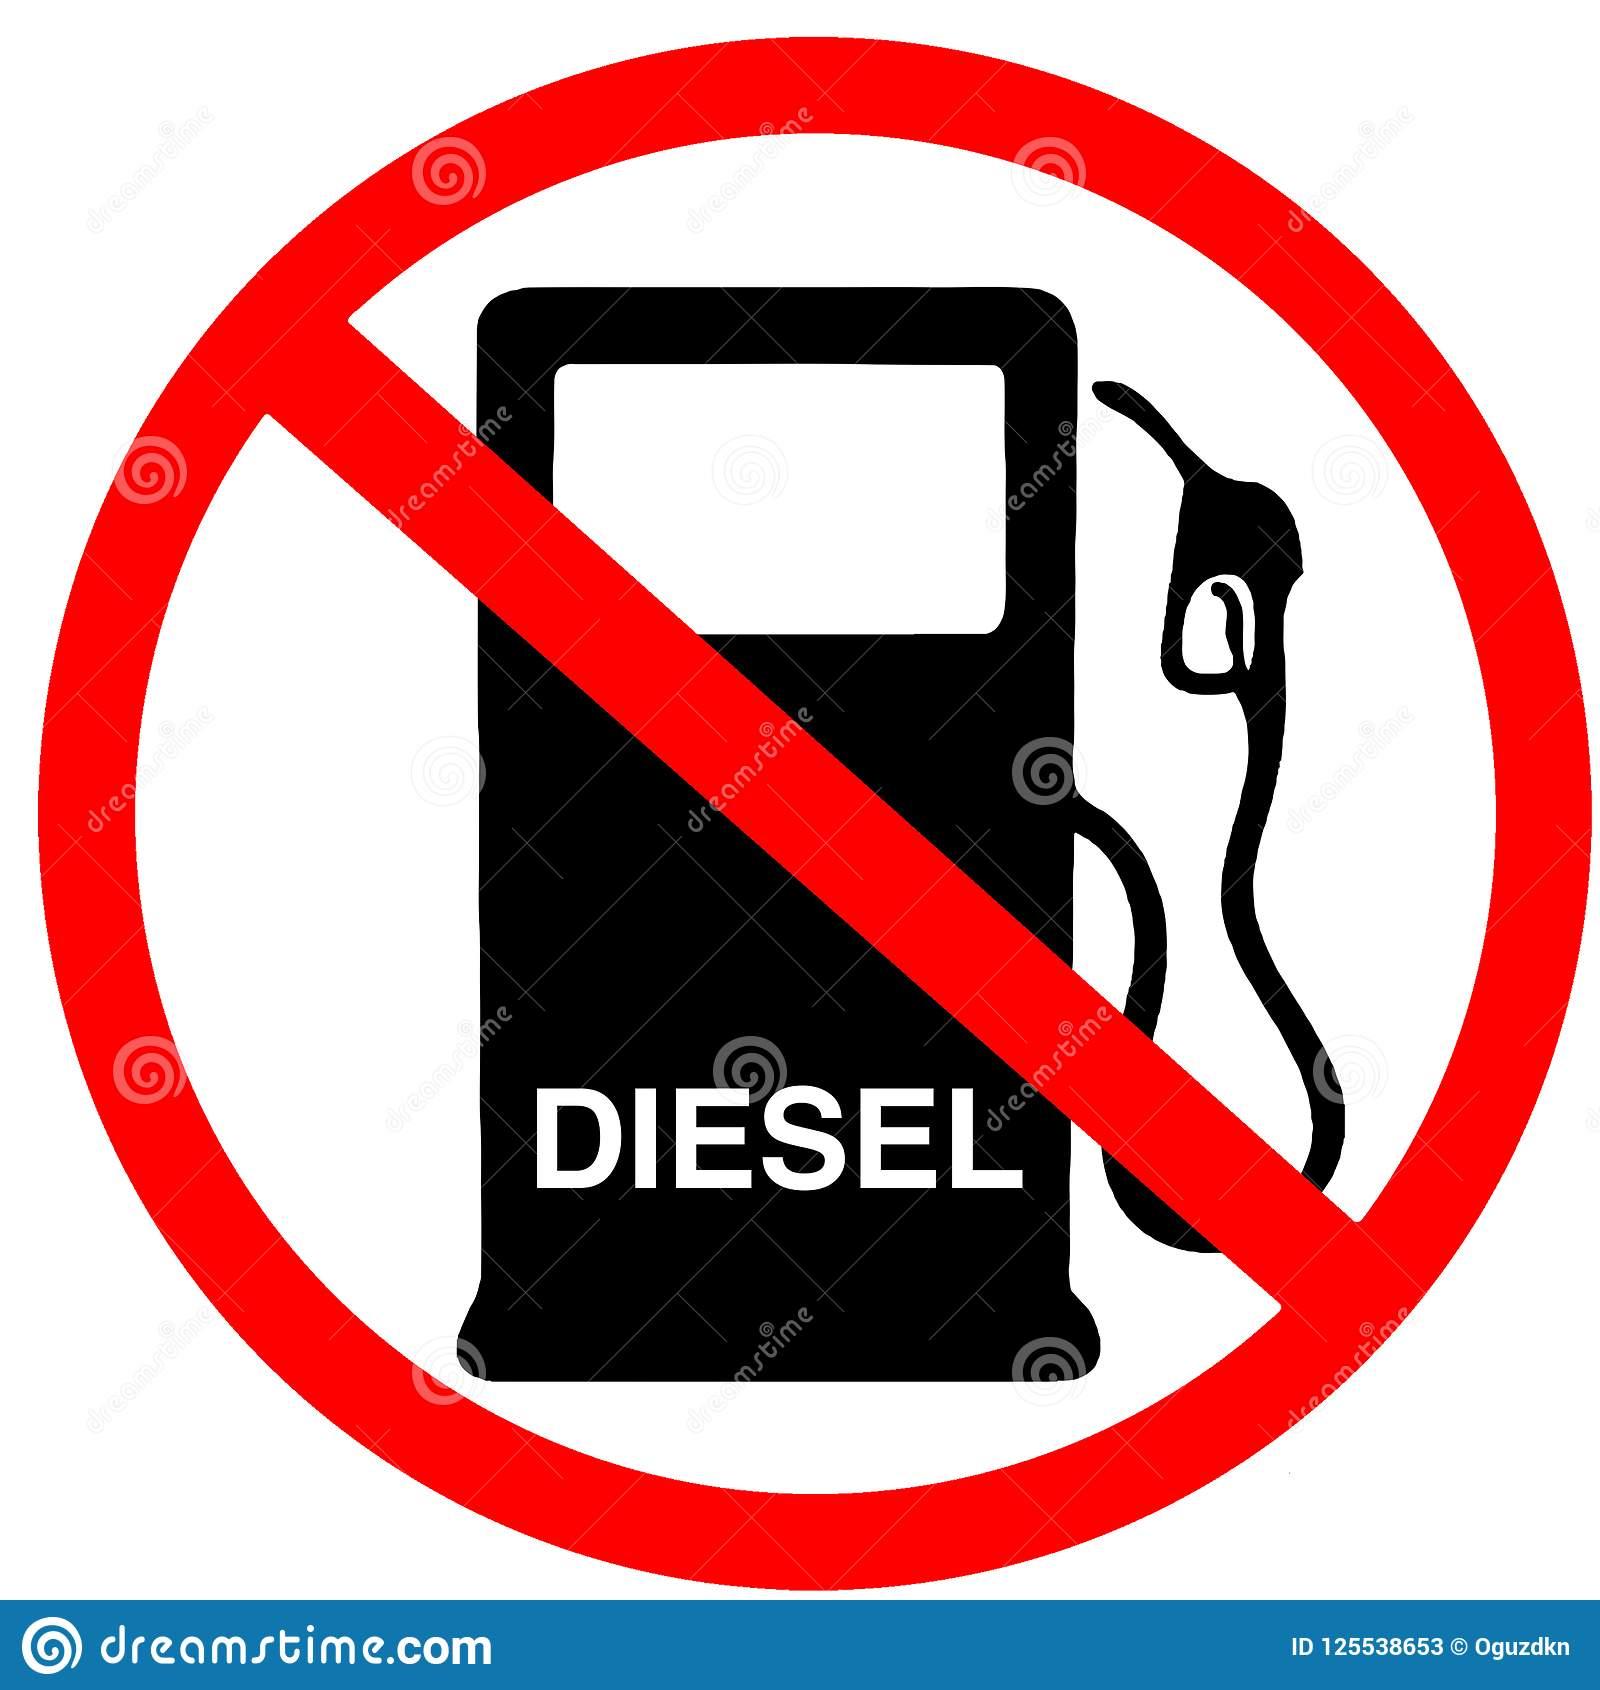 Diesel not in sale not allowed to buy diesel fuel gas station prohibition red circular road sign